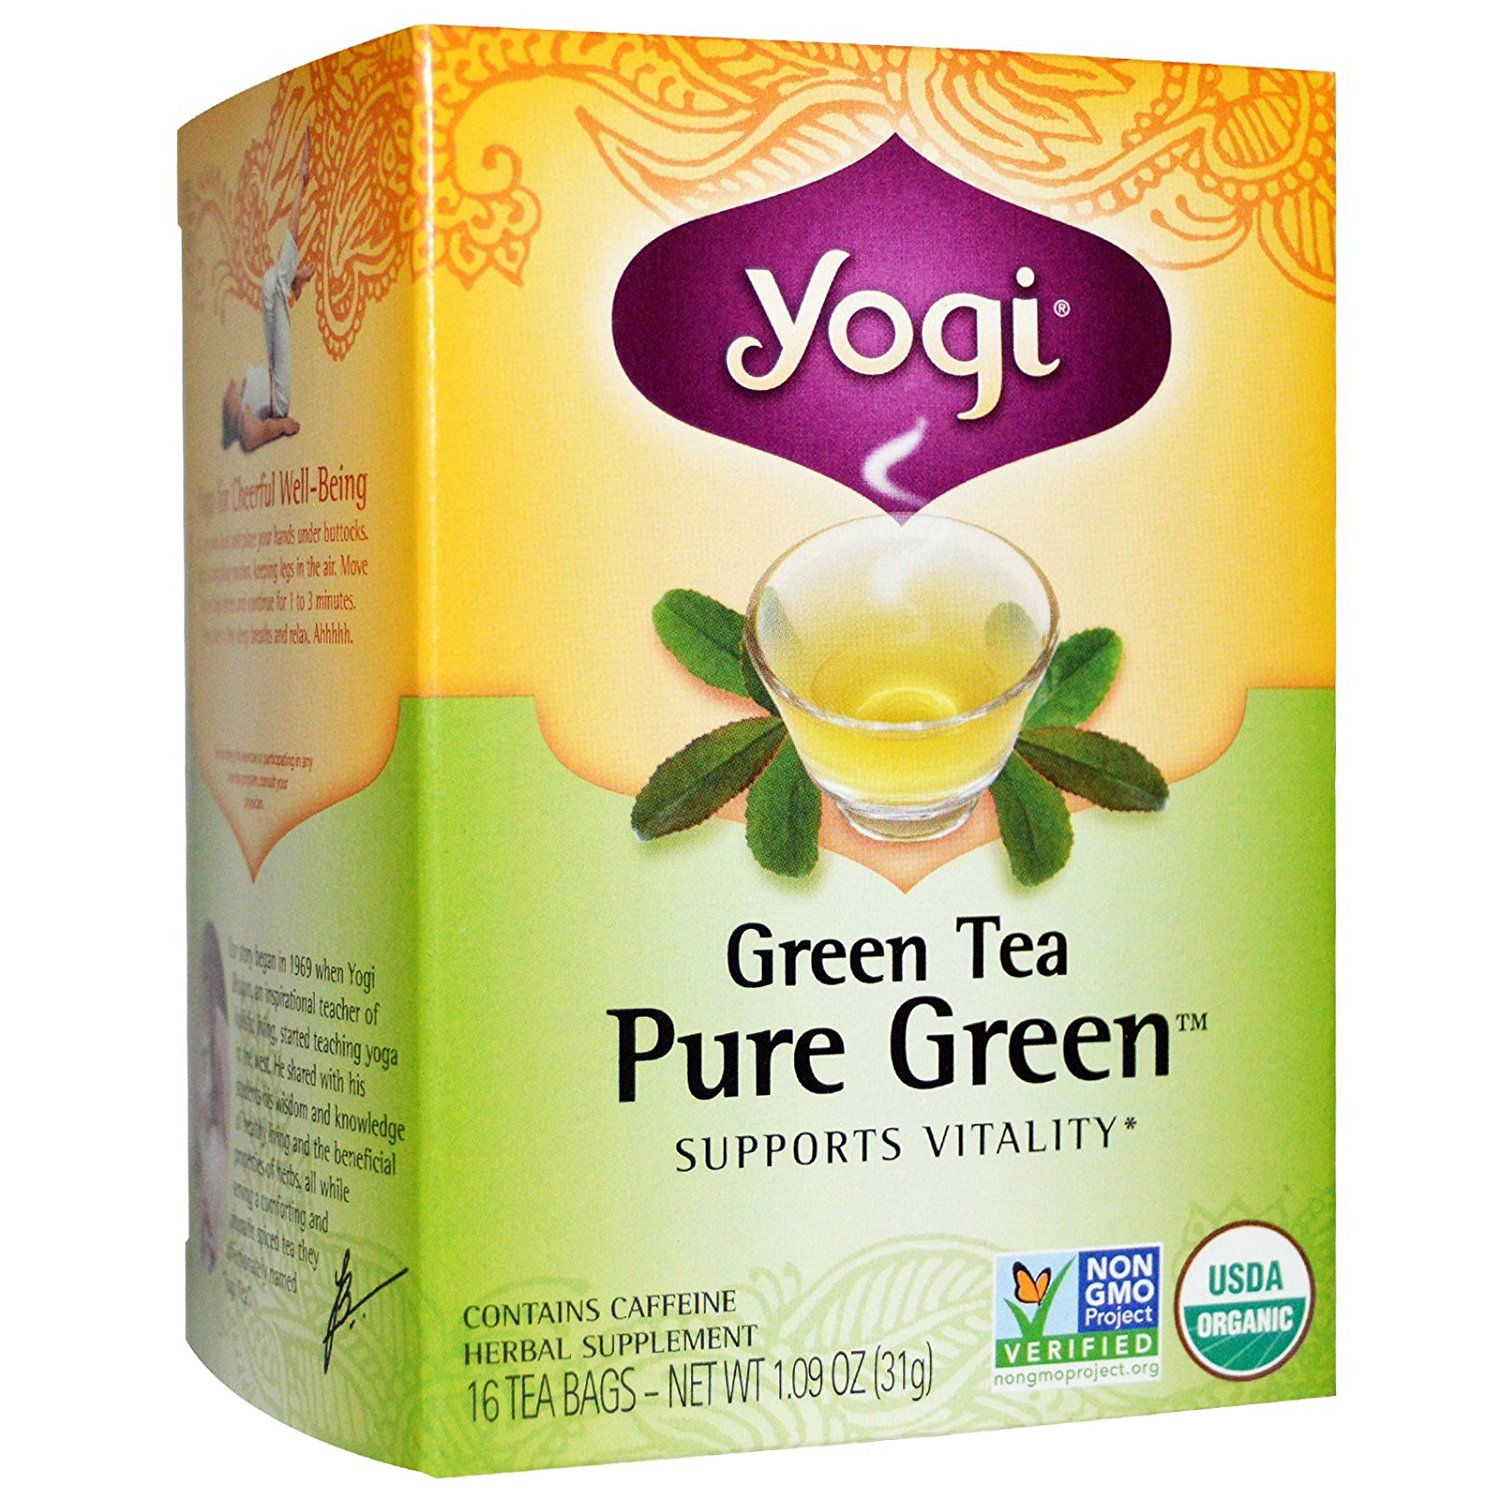 Yogi Green Tea Pure Green 16 Bags